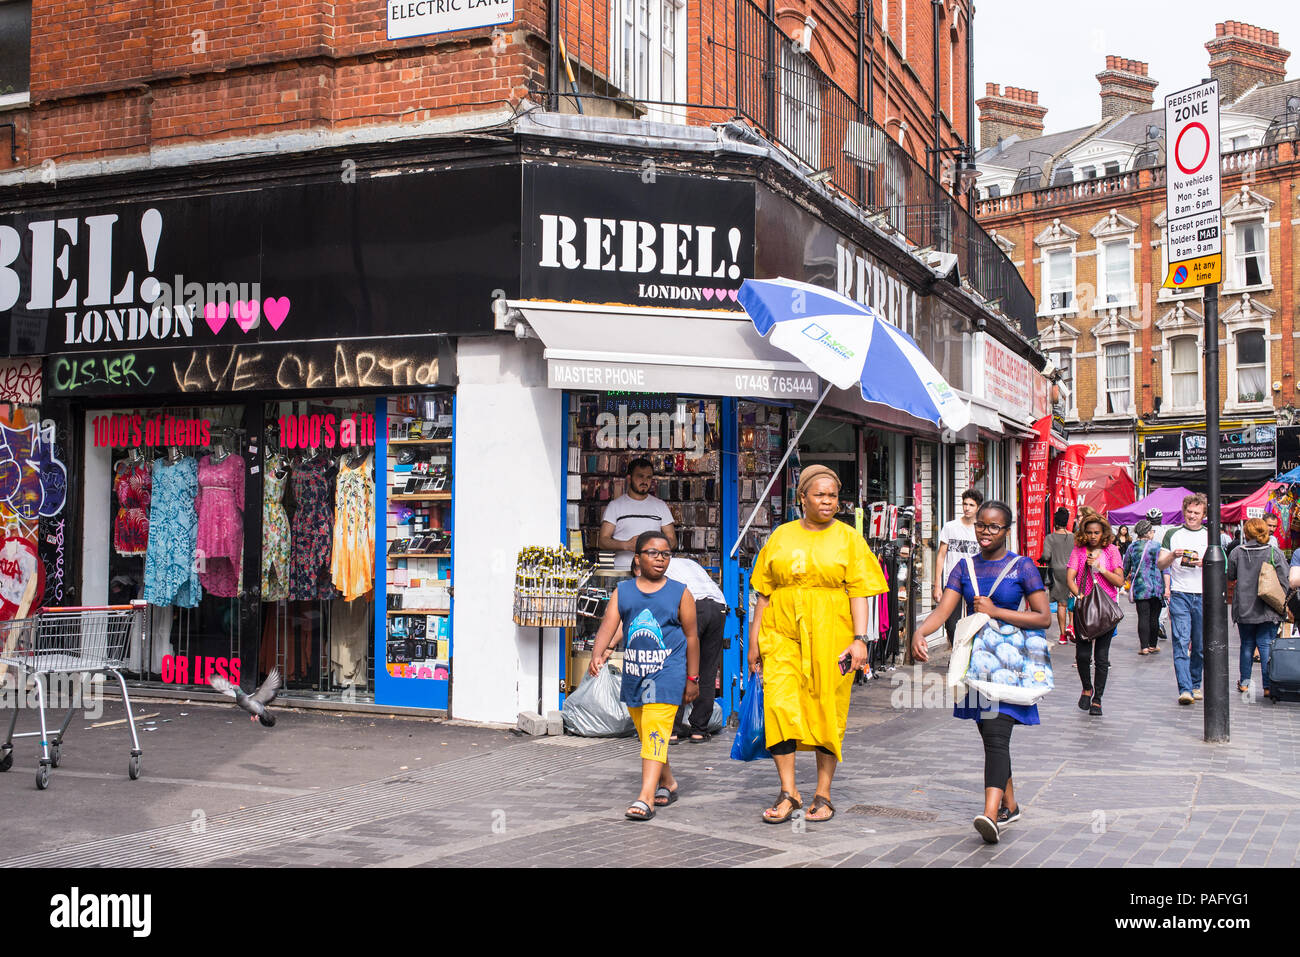 Street life in Electric Avenue, Brixton, London. - Stock Image